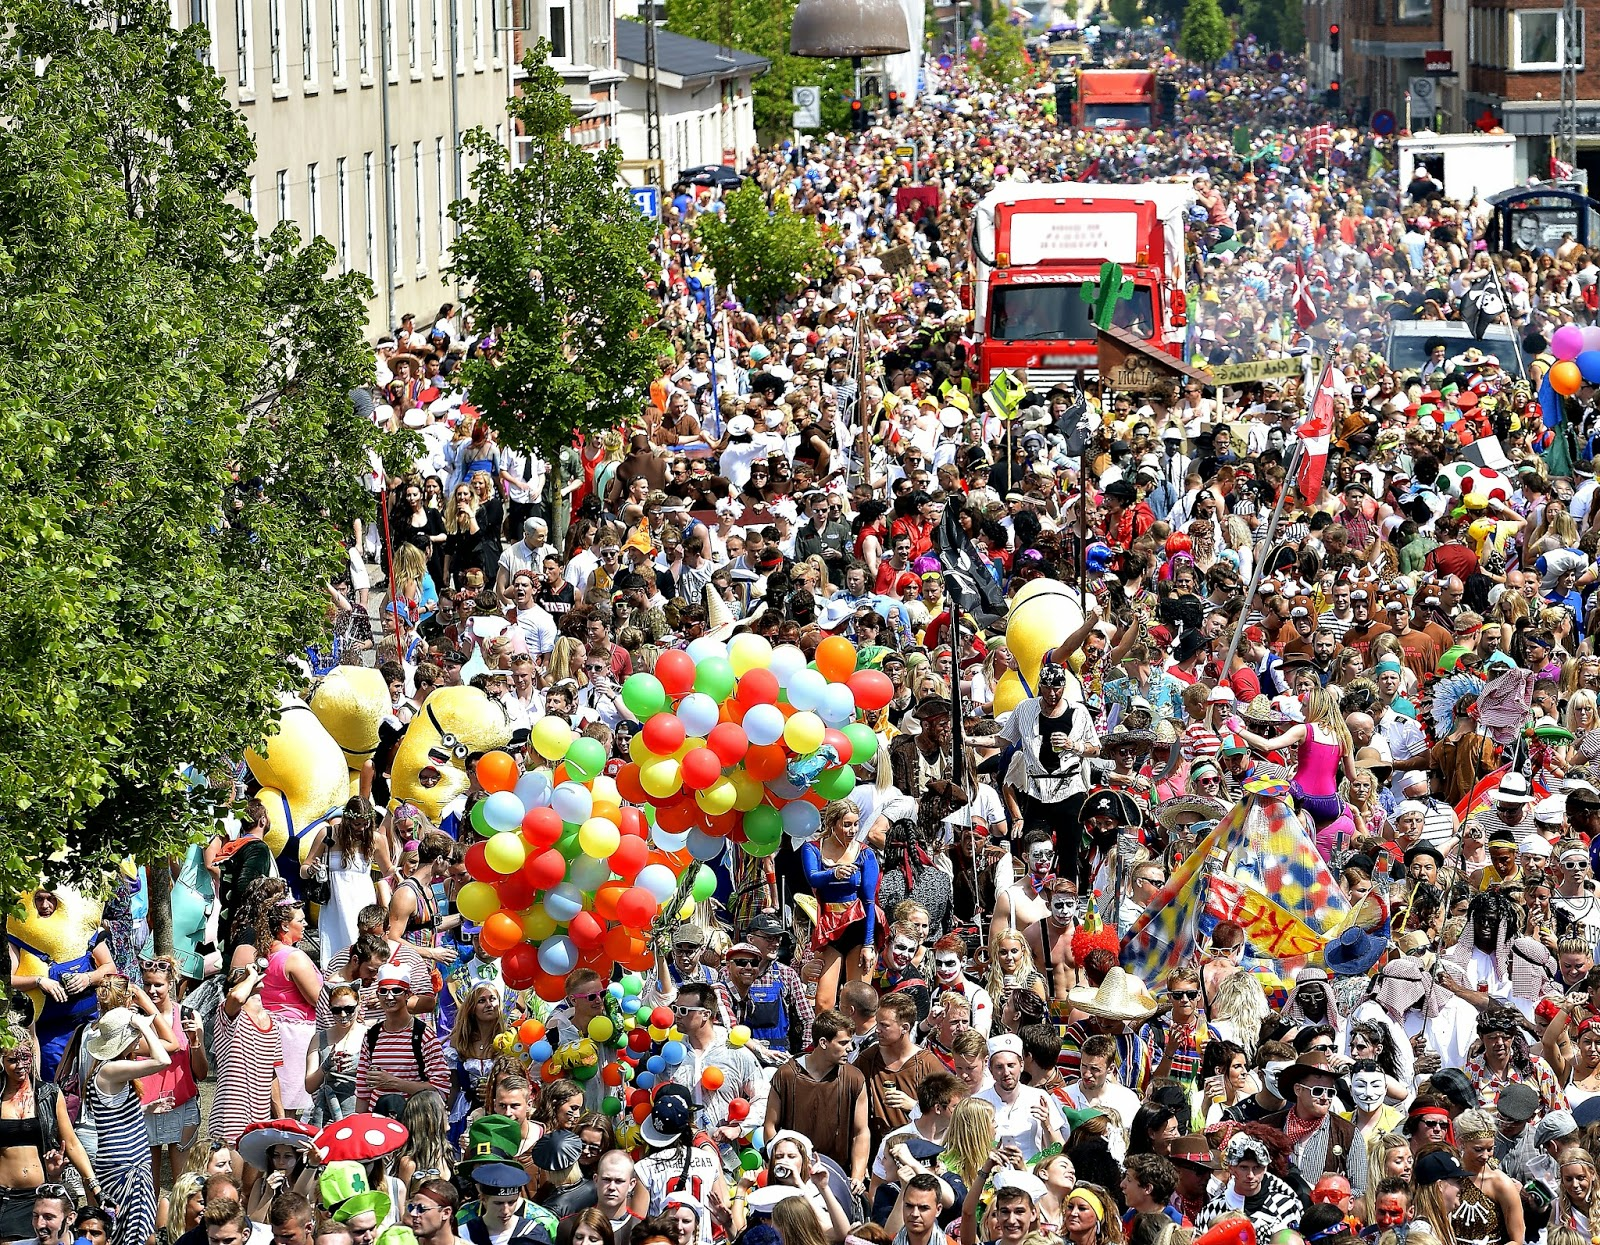 The celebration of the Carnival in Aalborg, Denmark 2015